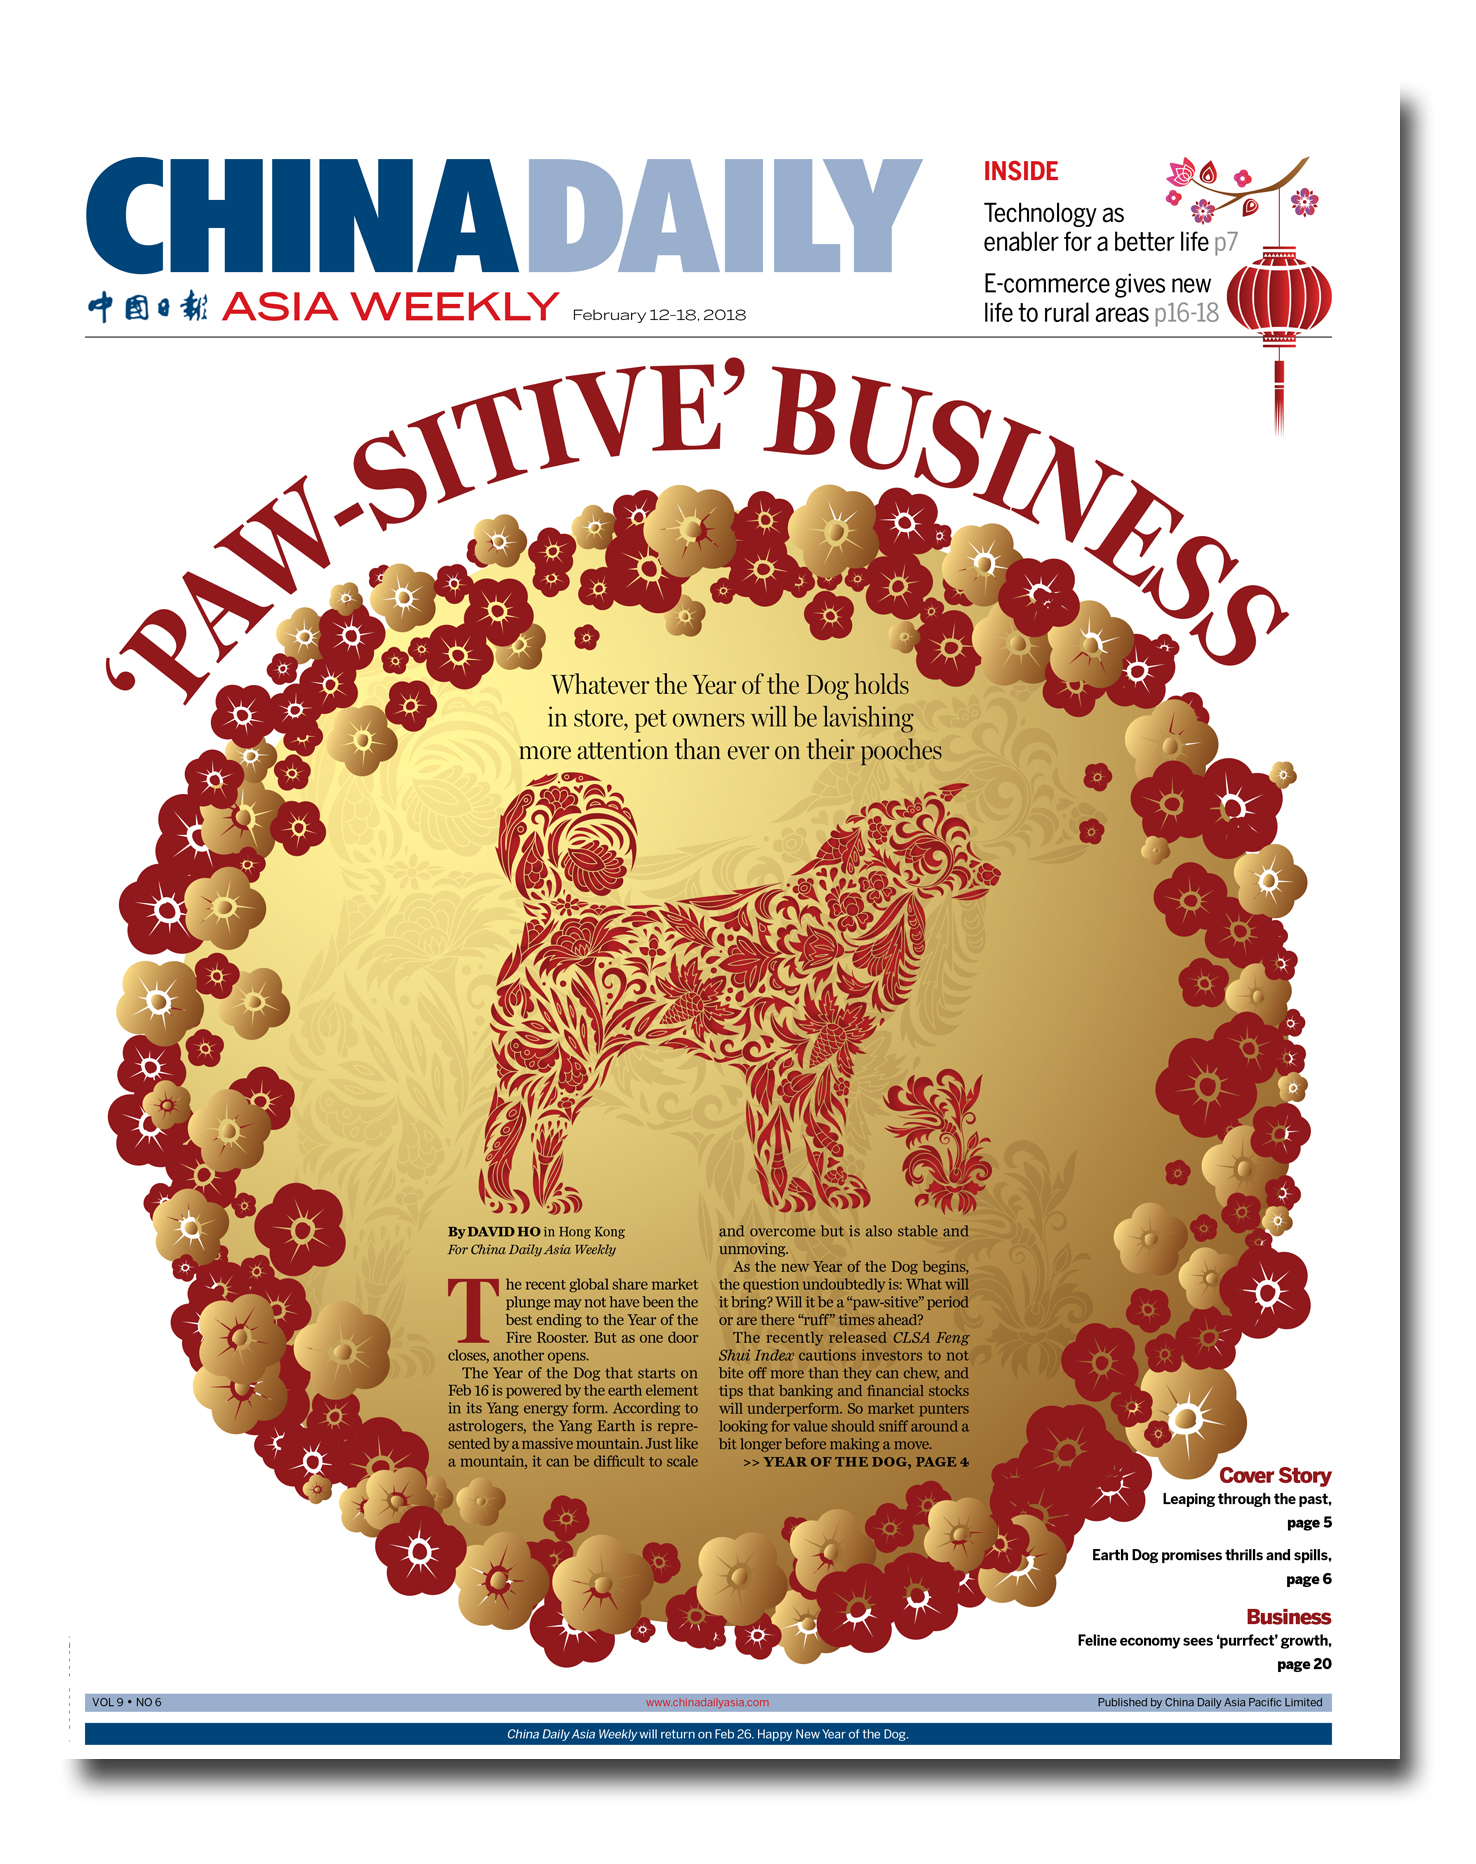 Paw Sitive Business China Daily Asia Weekly China Daily Asia Weekly